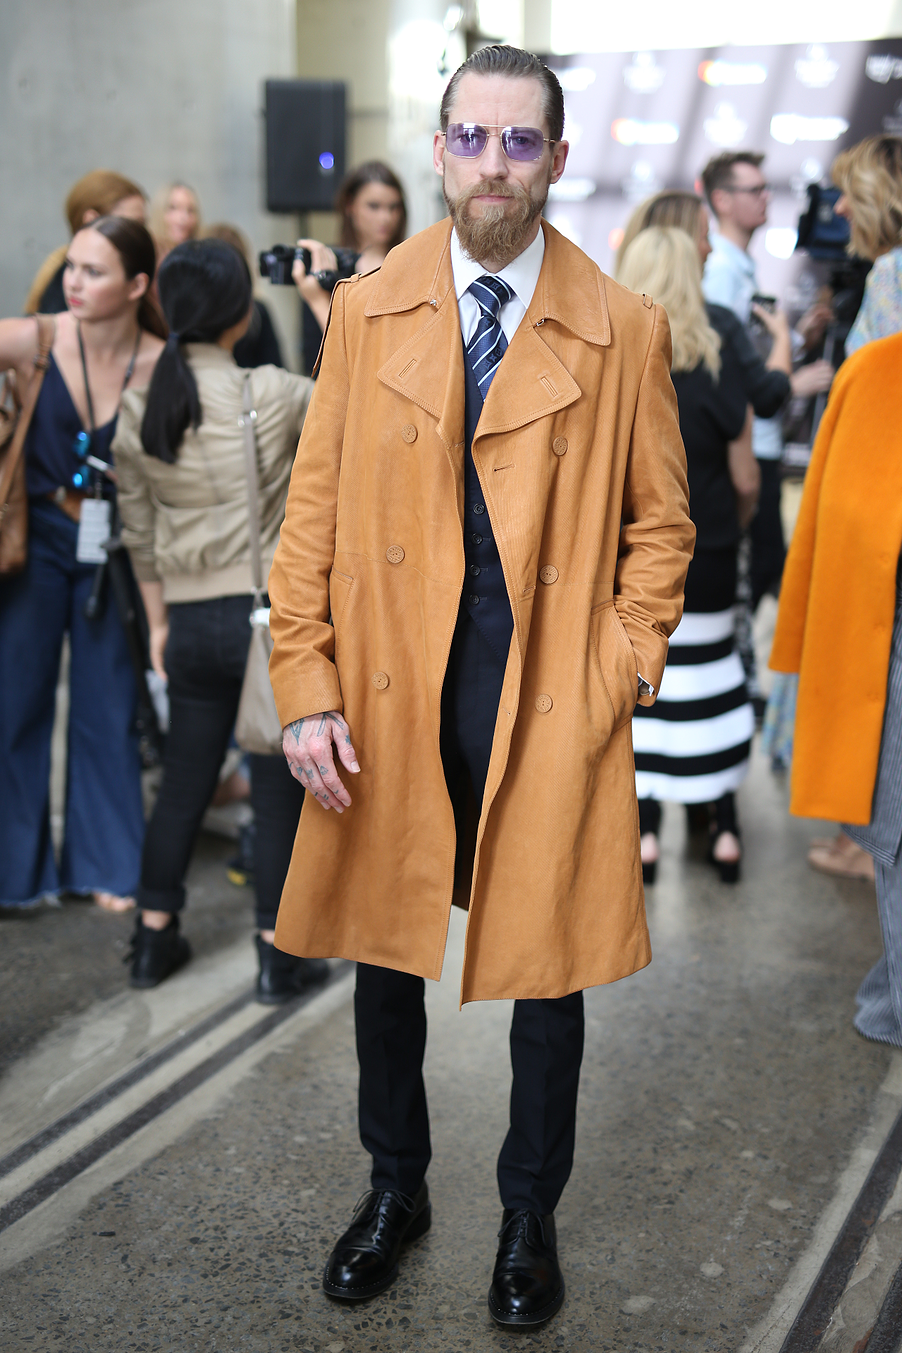 """The Coat is actually made out of Leather corduroy."" Justin Oshay Creative Director Brioni Menswear. Justin Oshay wears head to toe Louis Vuitton accessorised with sunglasses from Olivia Peoples."